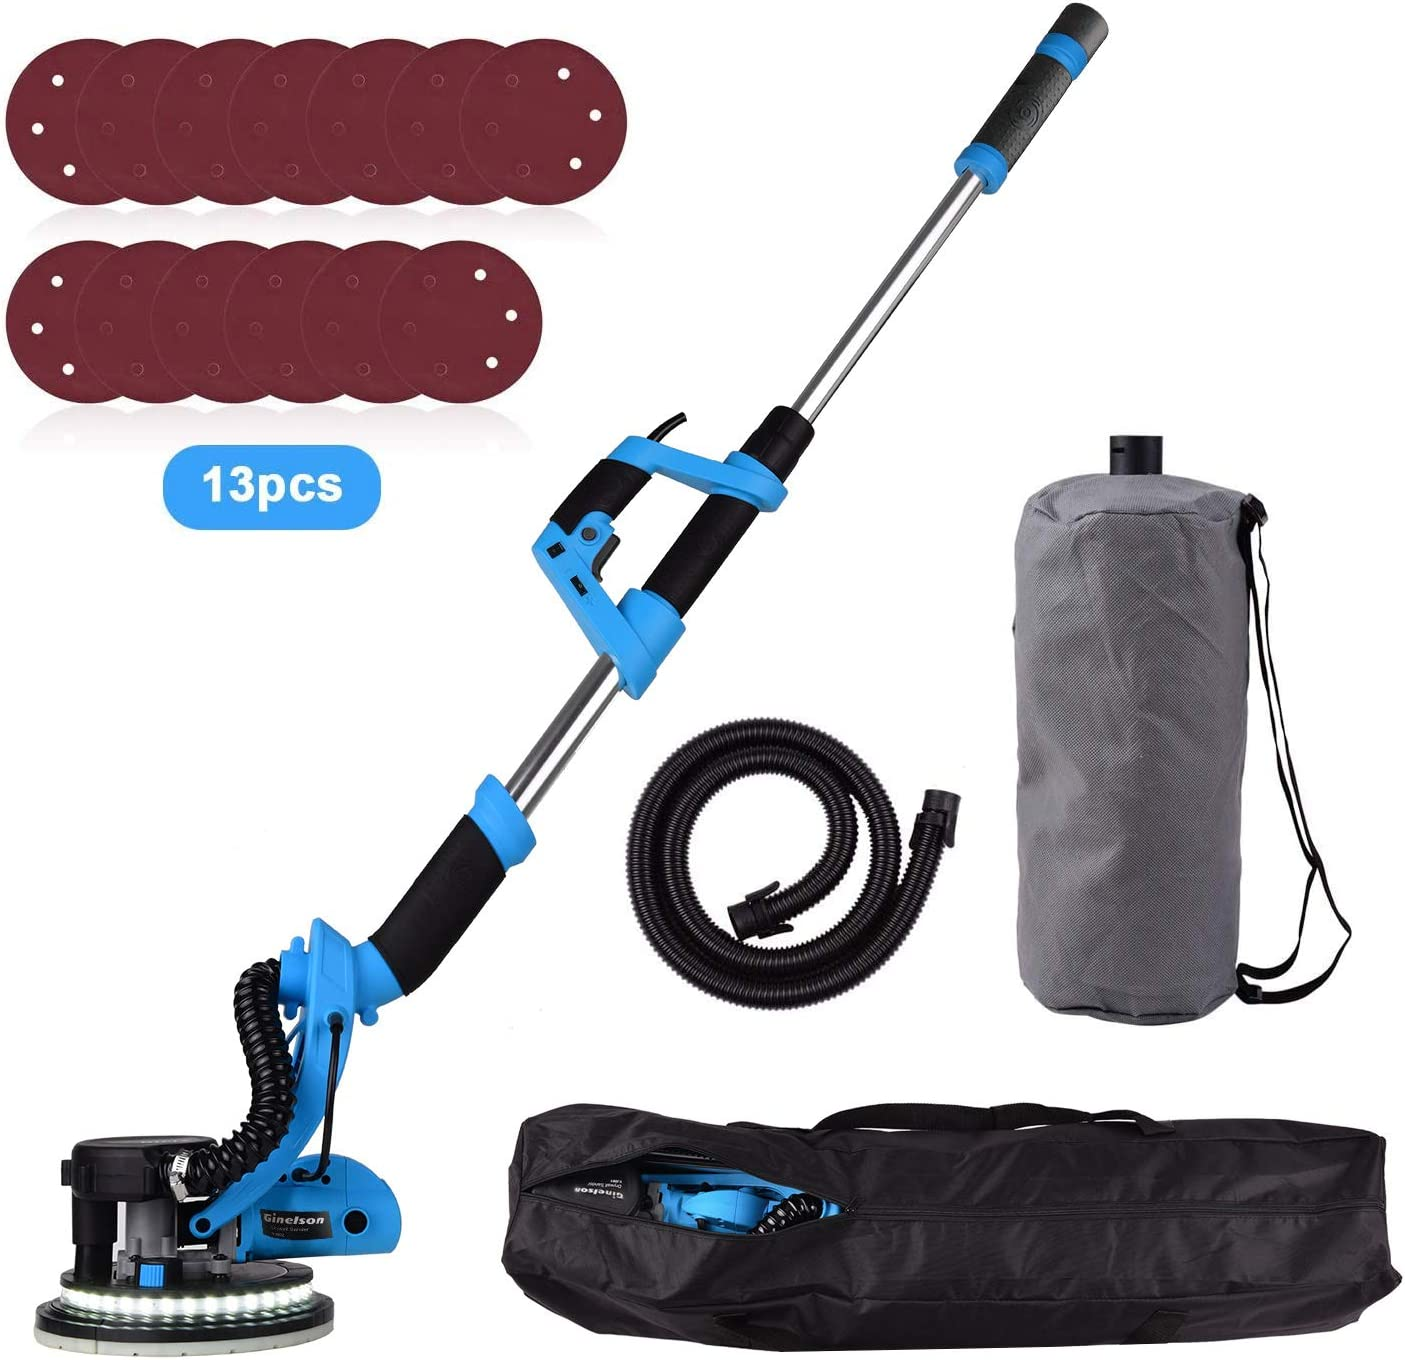 Drywall Sander, Ginelson 800W Drywall Vacuum Sander, Detachable Base, Vacuum Automatic Dust Absorption, 13 Sanding Discs, Variable Speed 500-1800RPM, Double-Layer LED, with Carry Bag